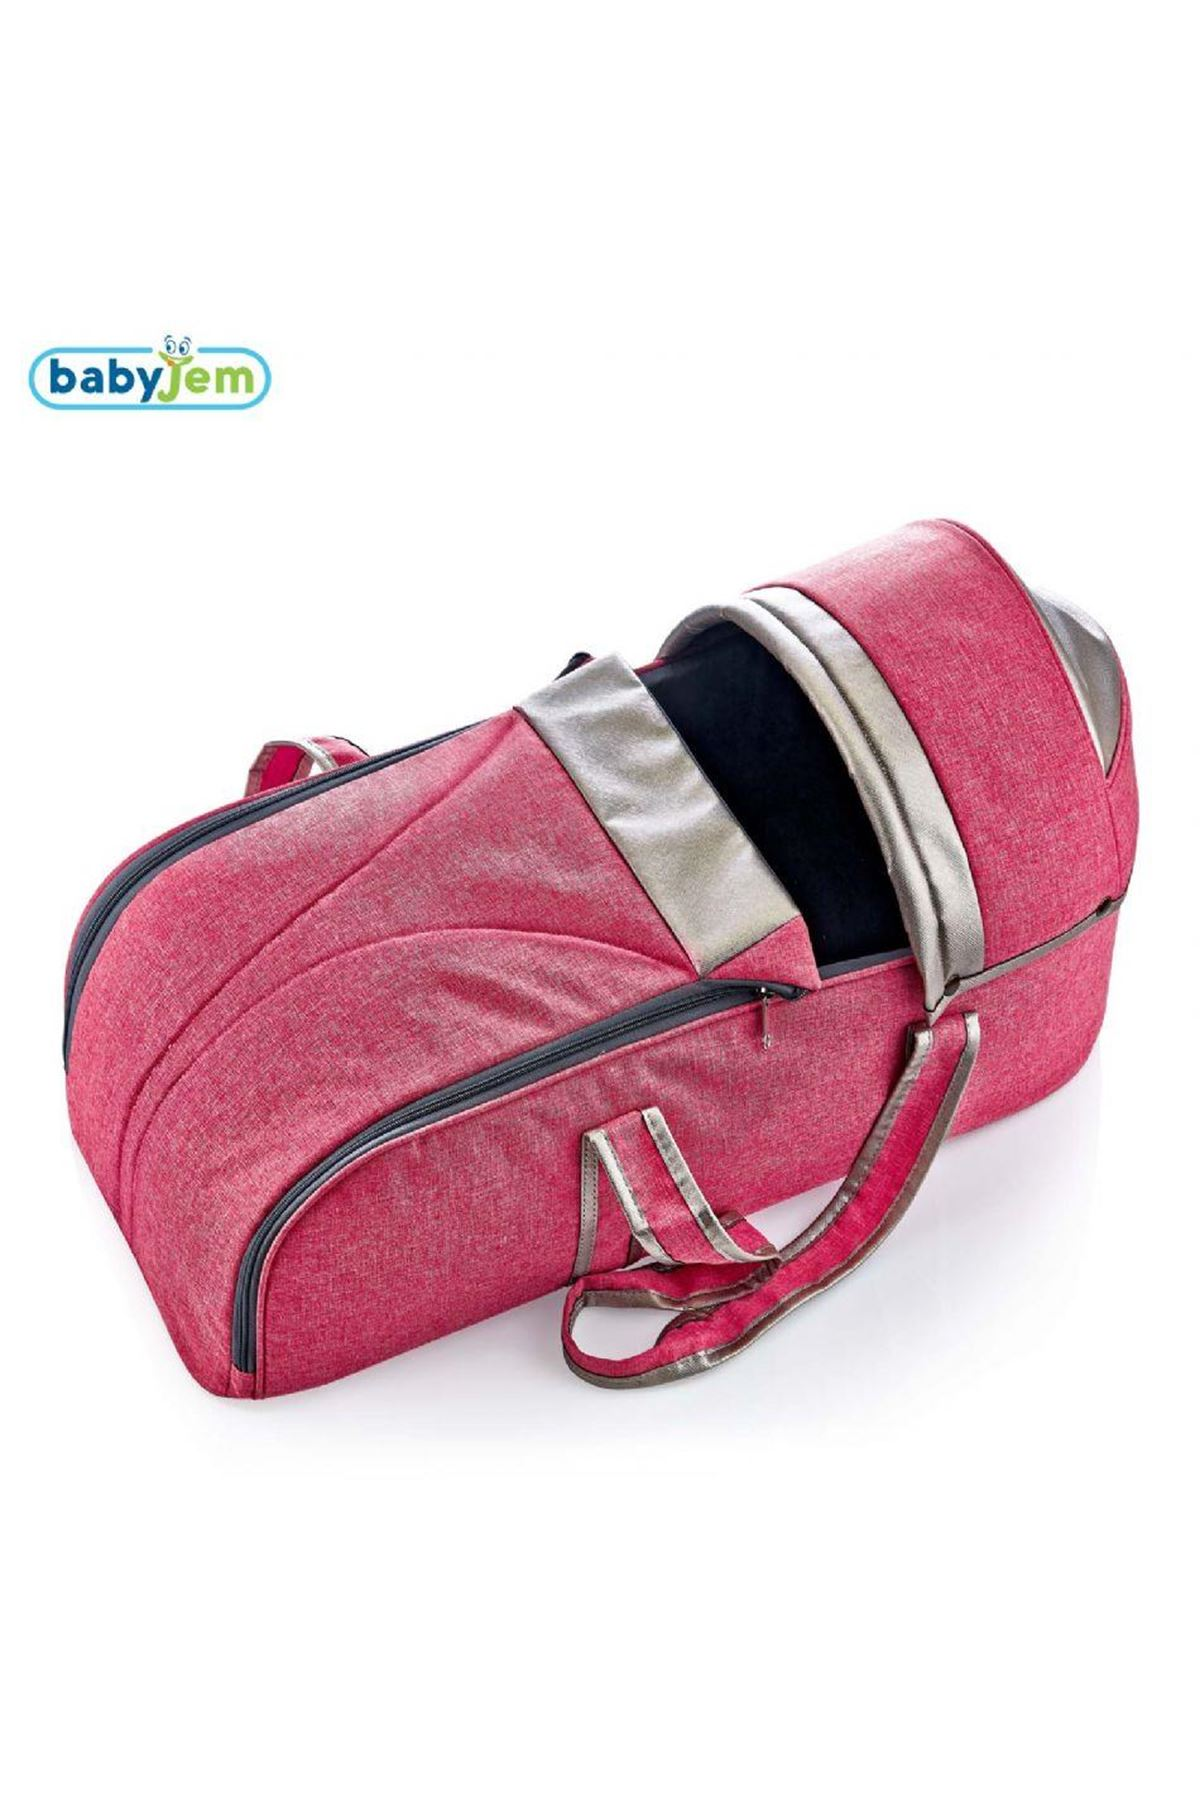 BabyJem Denim Port Bebe 371 Pembe